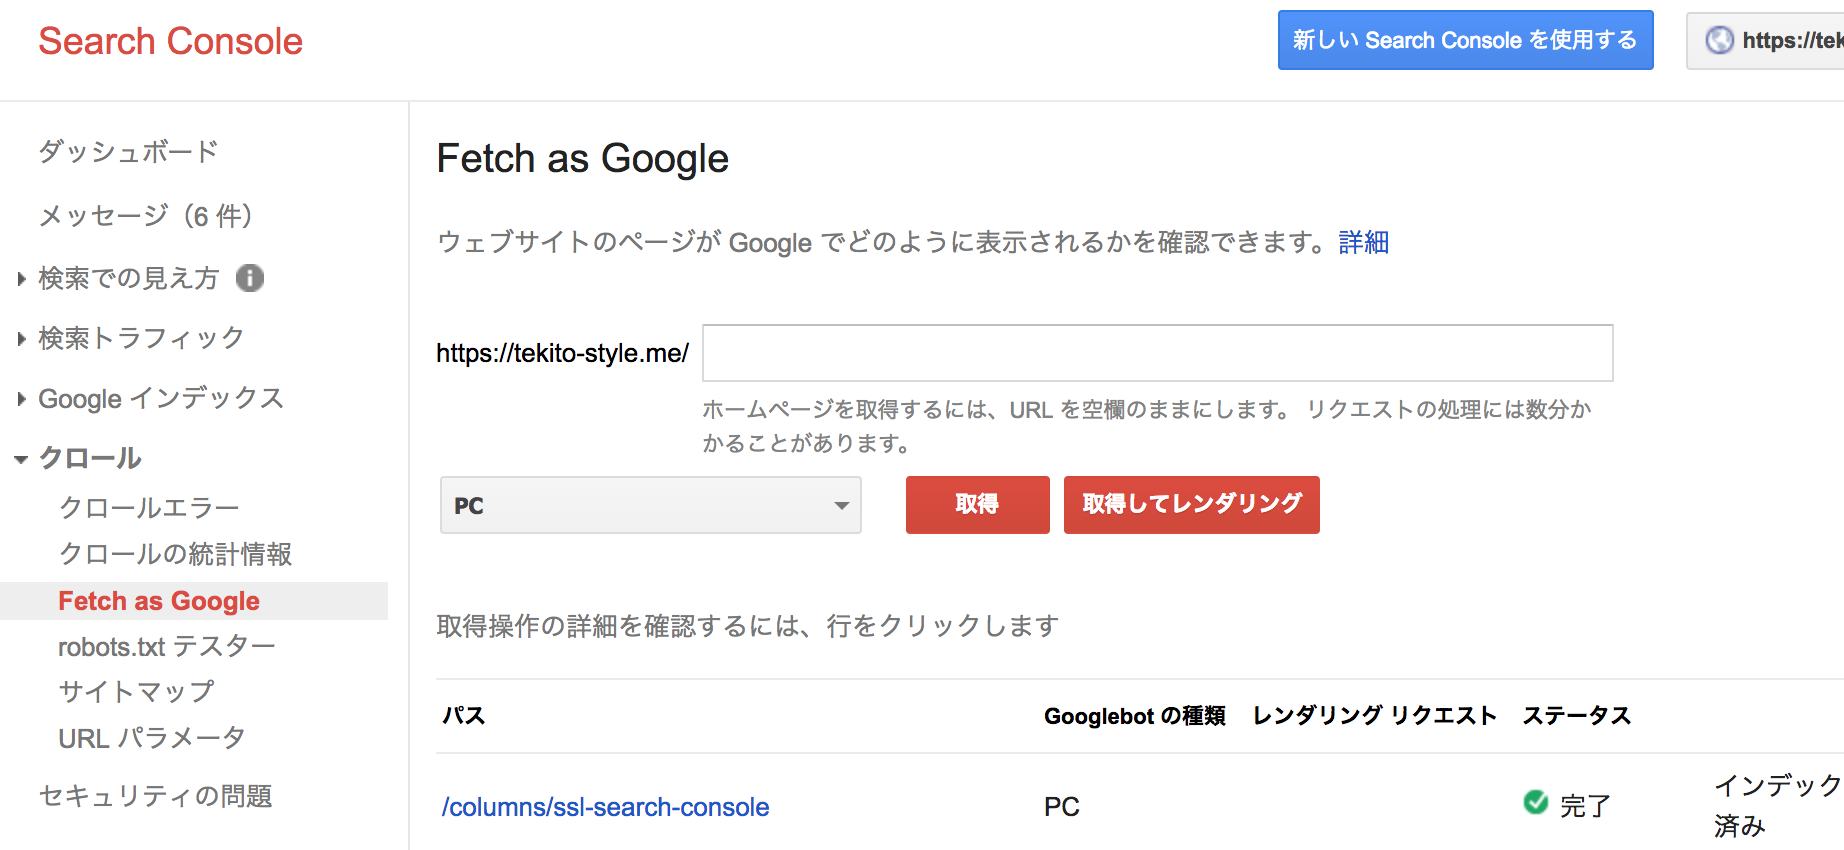 Search Console でFech as Google